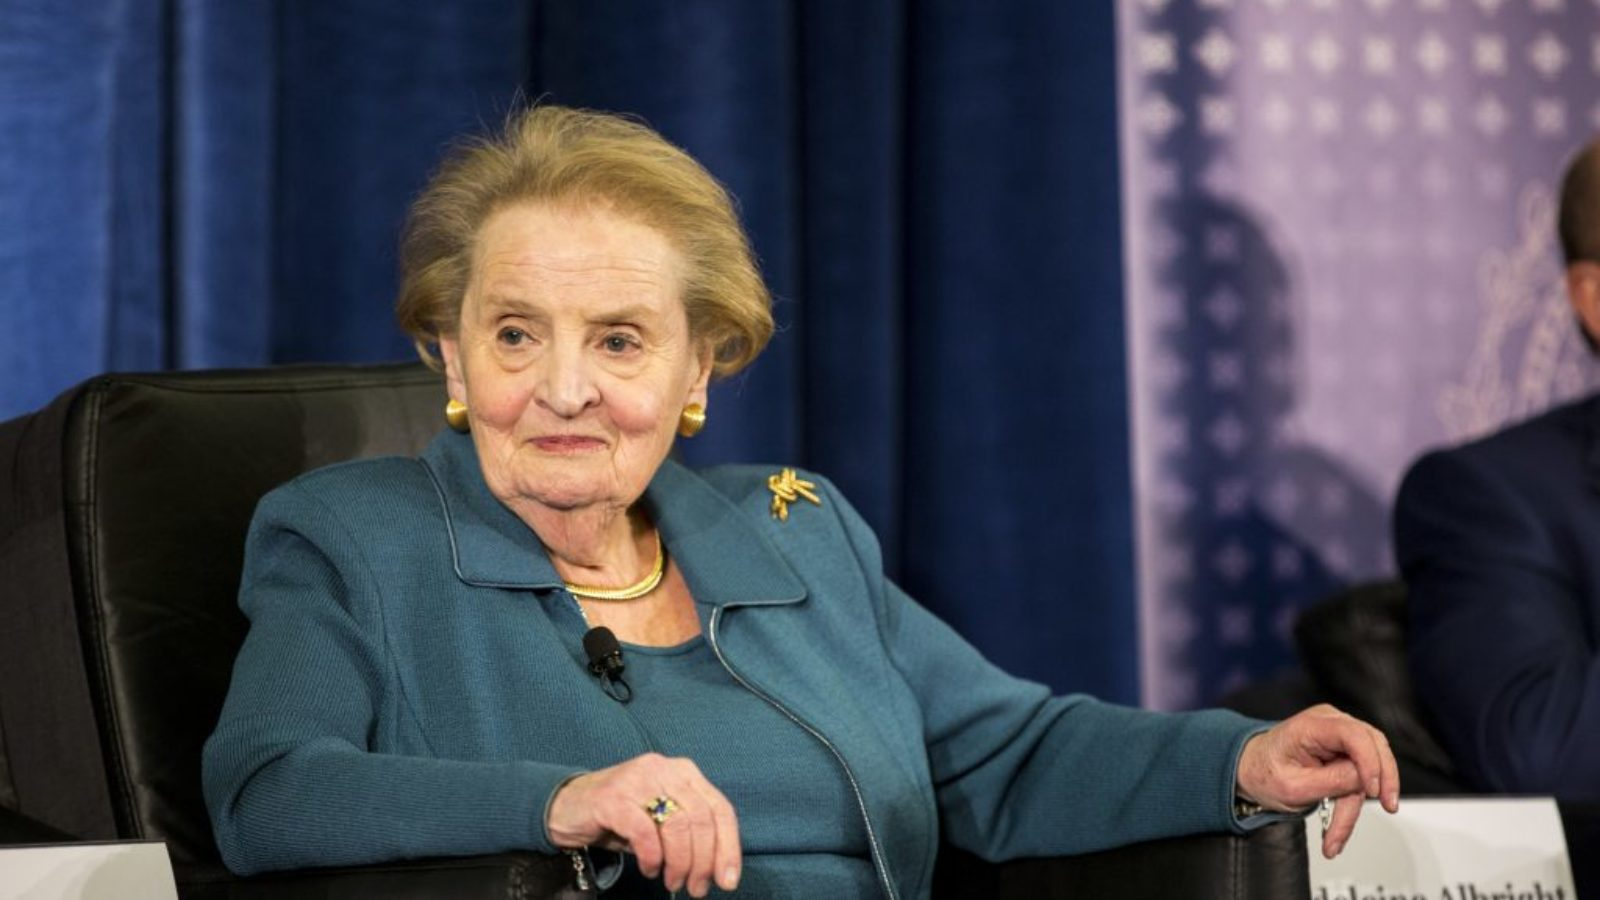 Madeline Albright joining the SFS staff